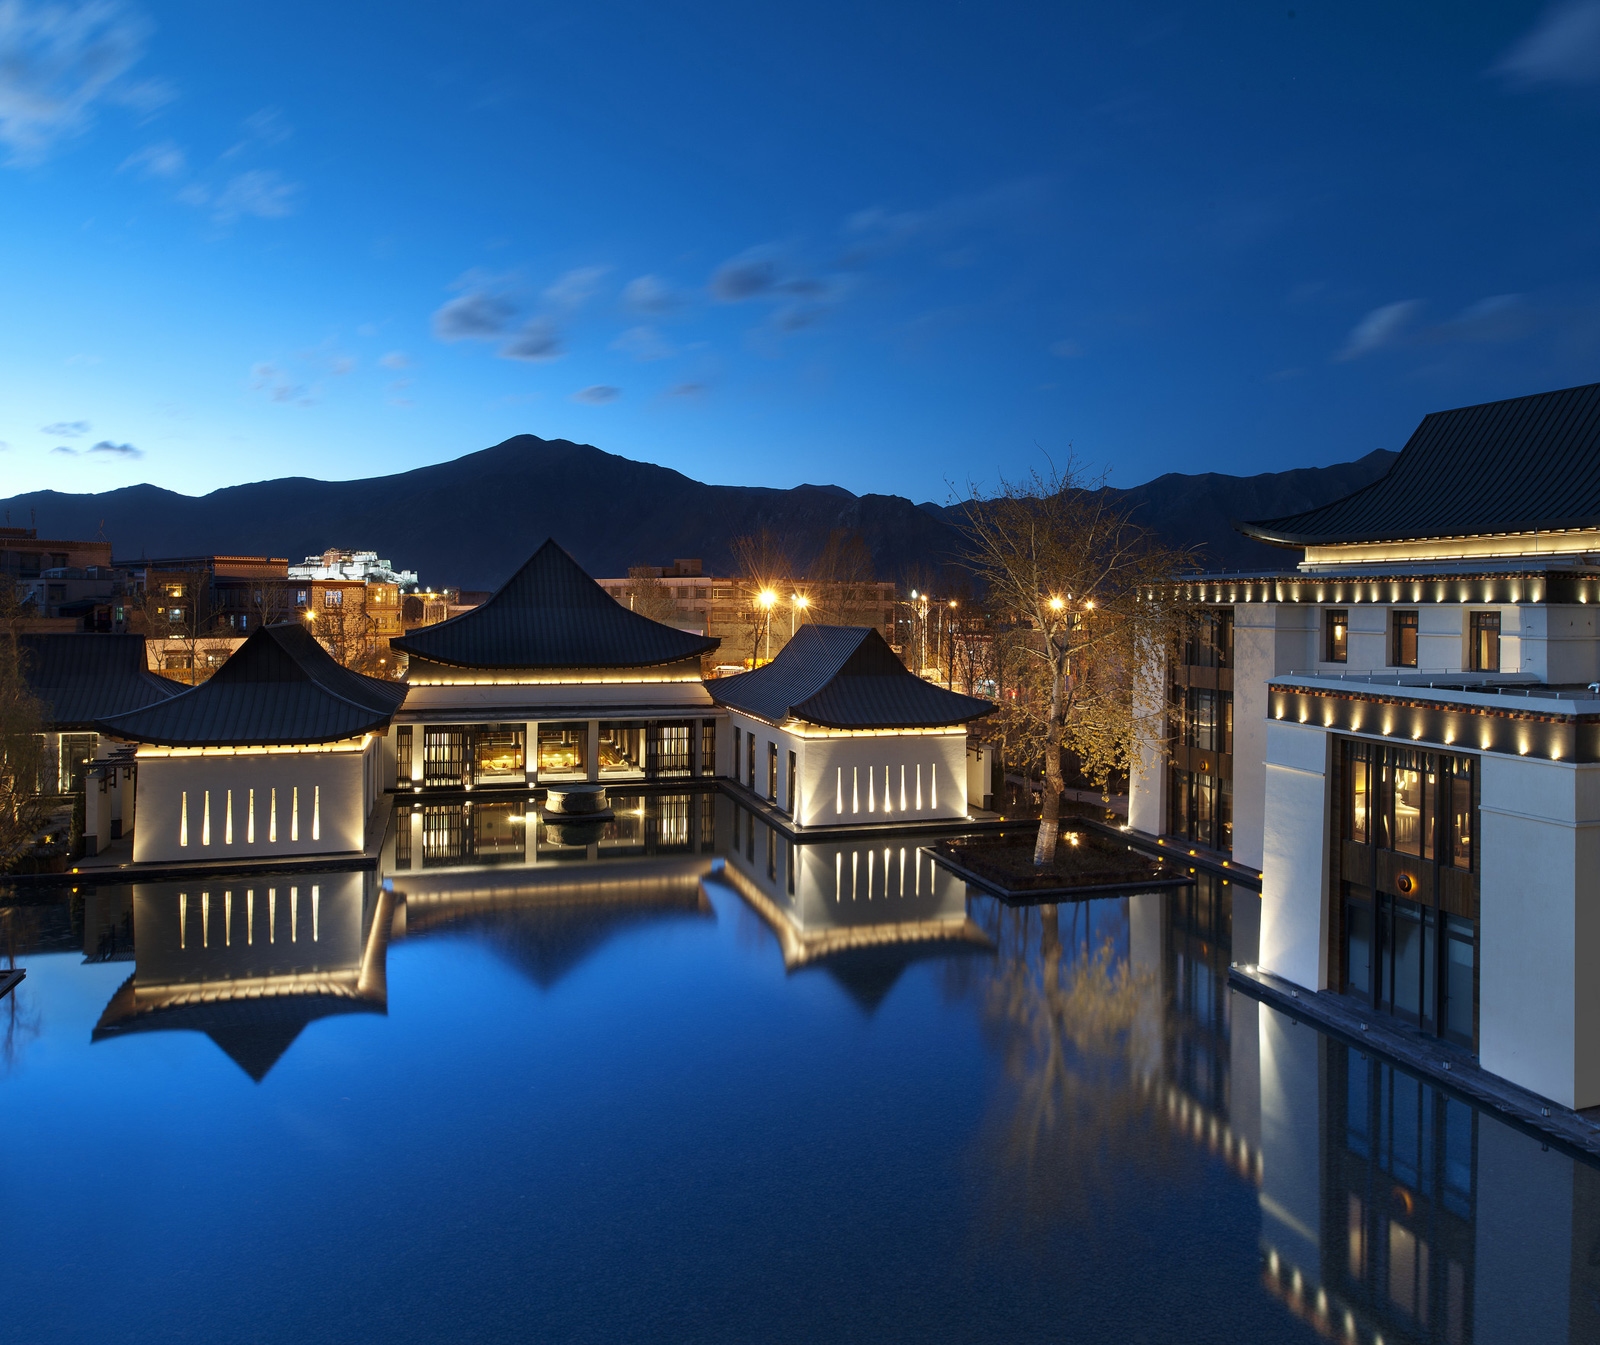 St regis lhasa tibet 39 s first five star hotel extravaganzi for Luxury accommodation worldwide